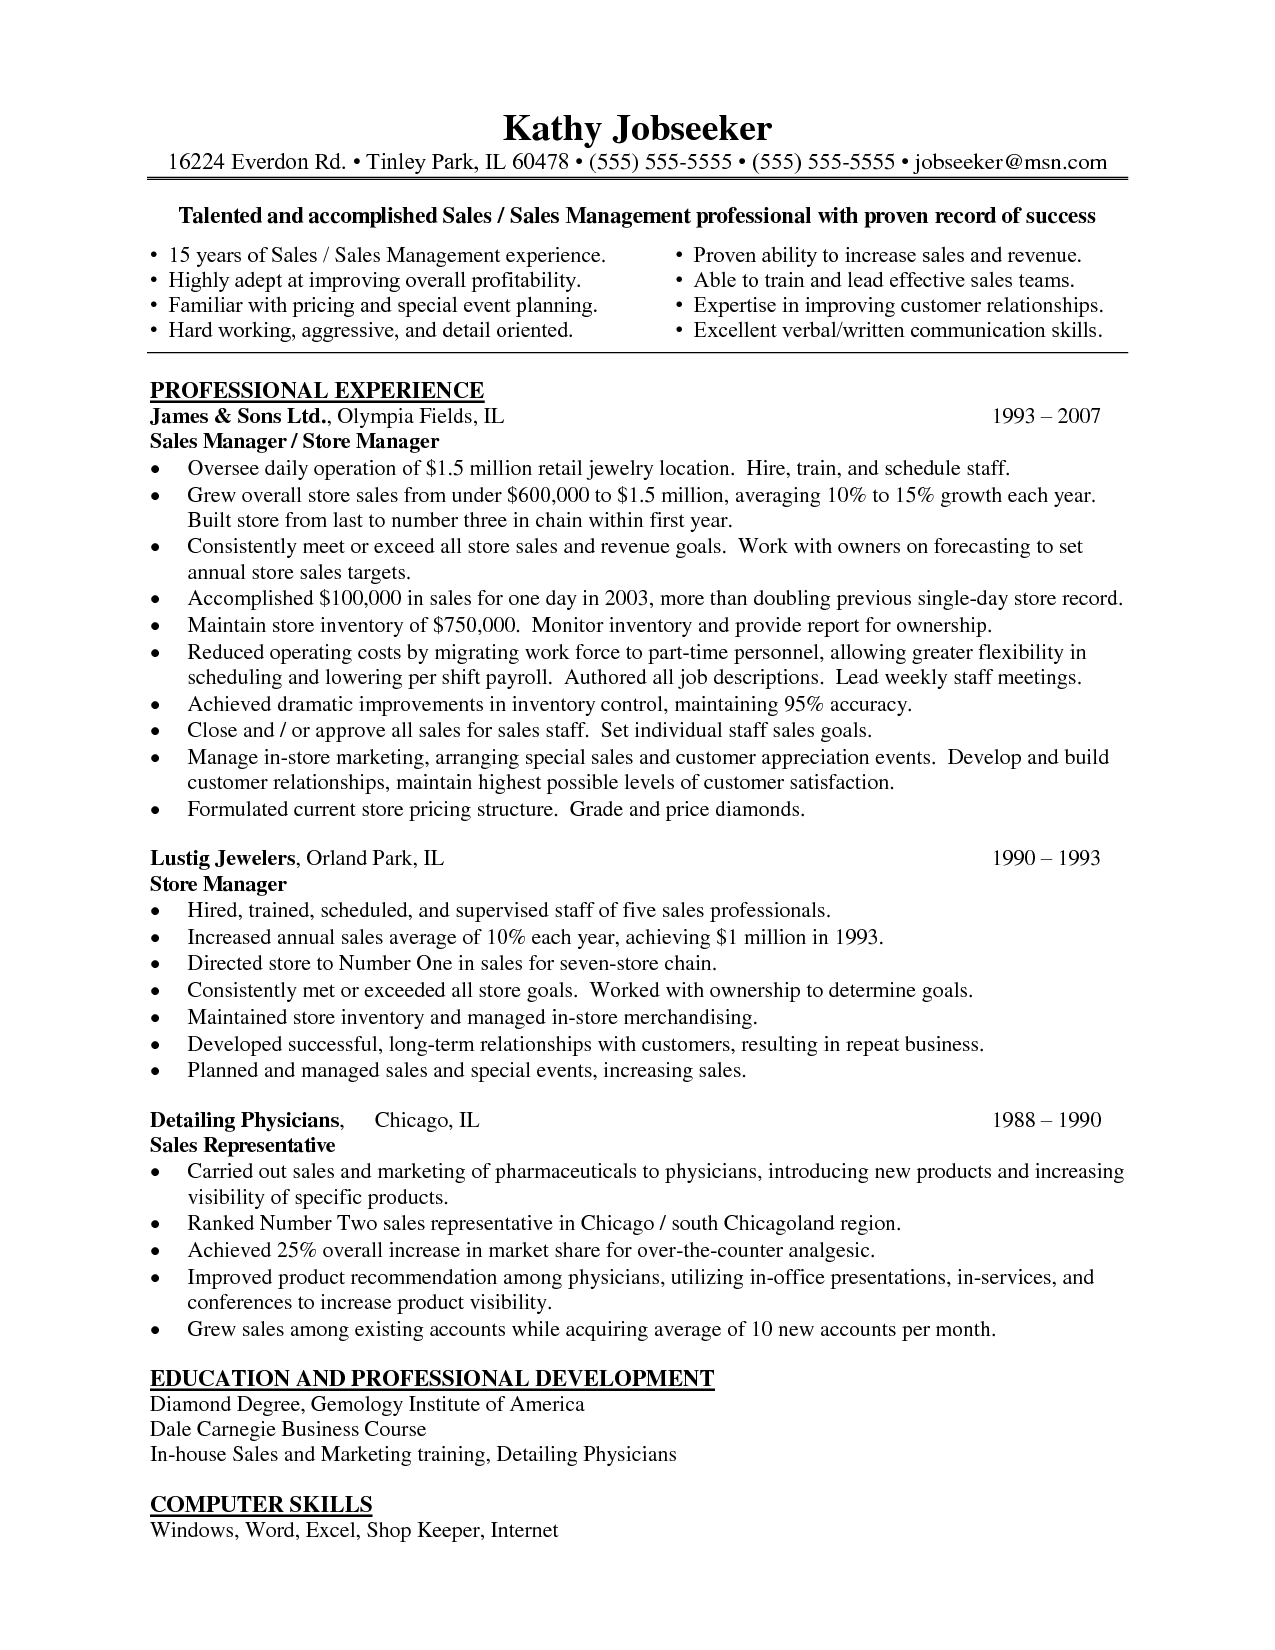 Resume Examples For Retail Store Manager | Sample Cover Letter For Retail  Management Job 4  Resume For Retail Manager